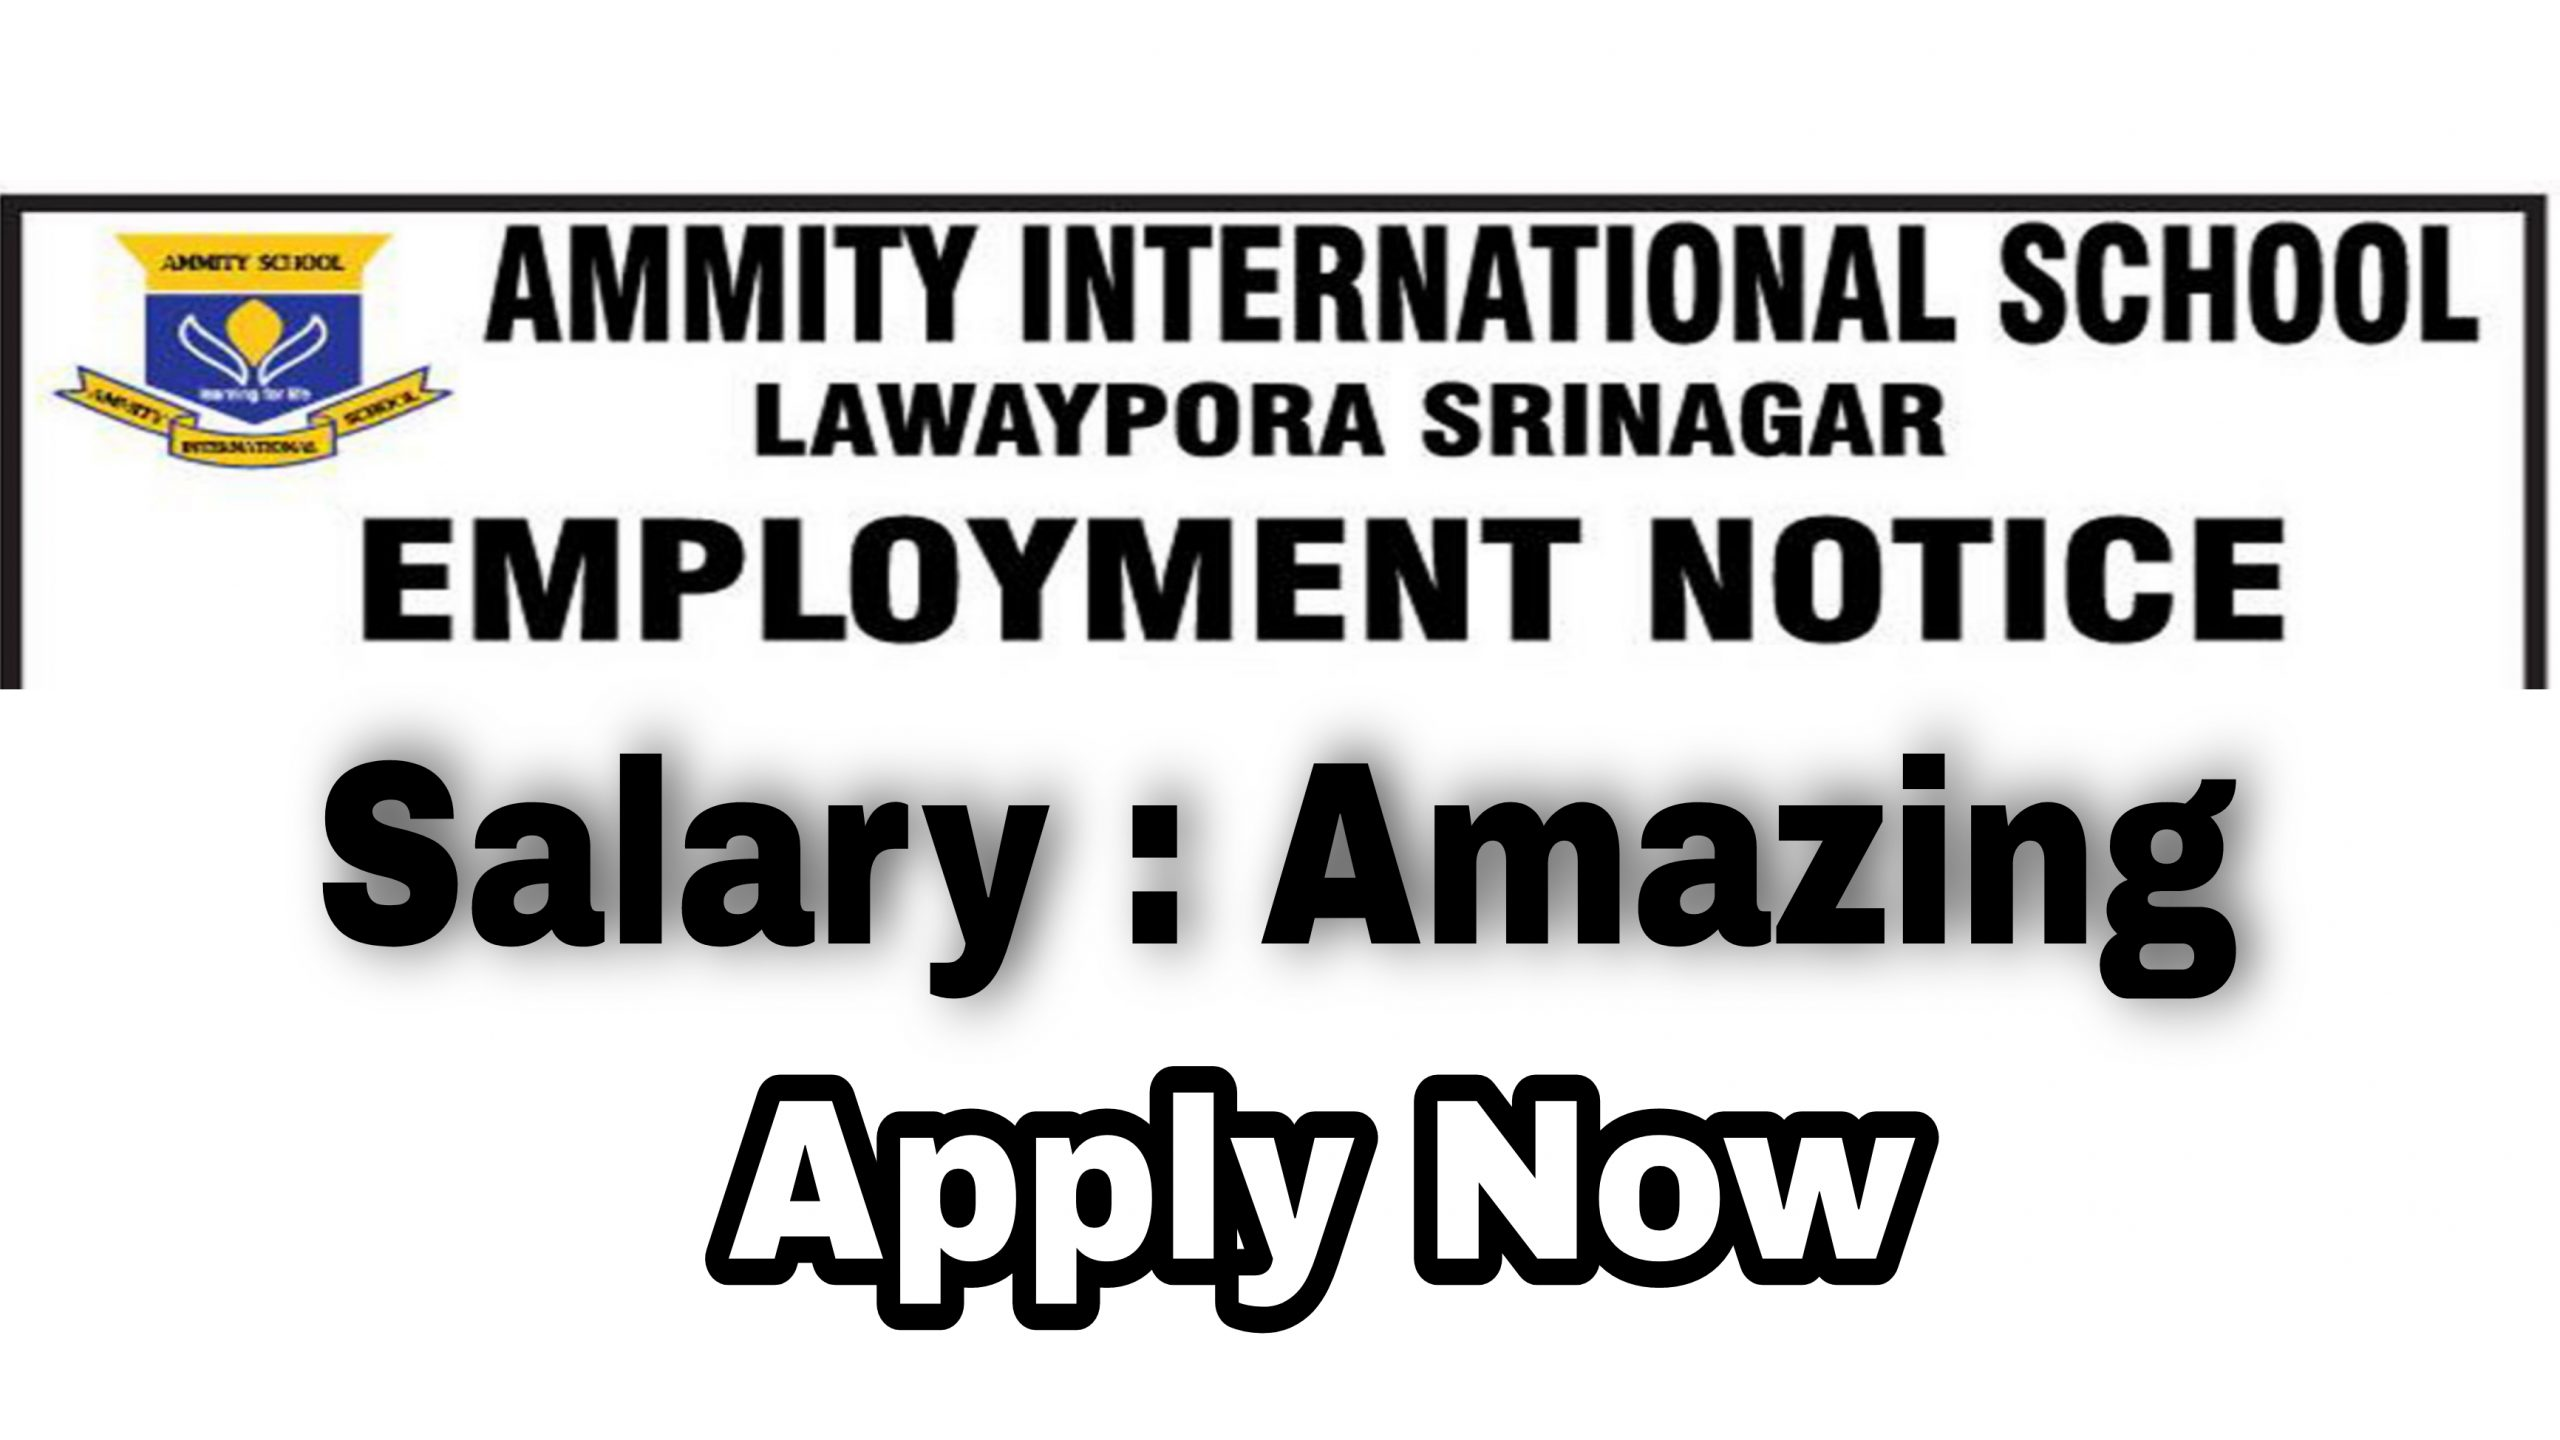 amity international school lawaypora srinagar Jobs 2021